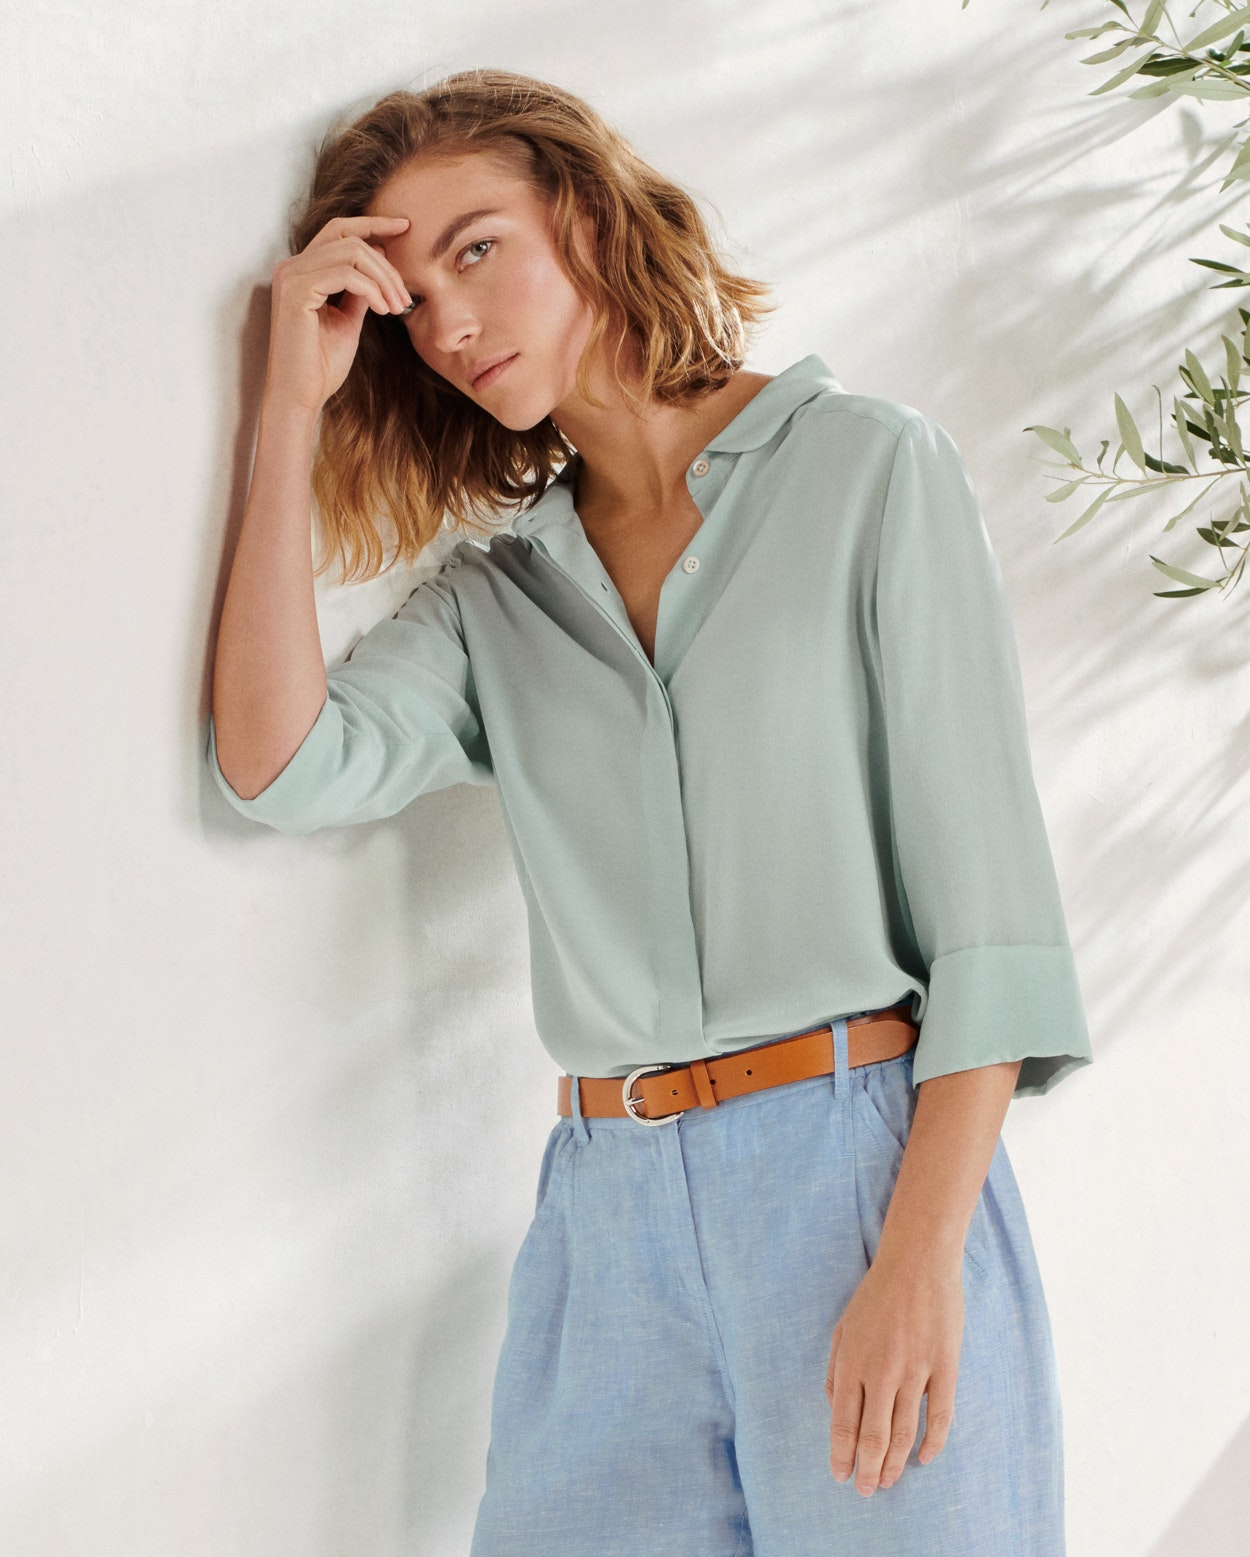 cb12c320281aa Poetry - Rounded-collar silk shirt